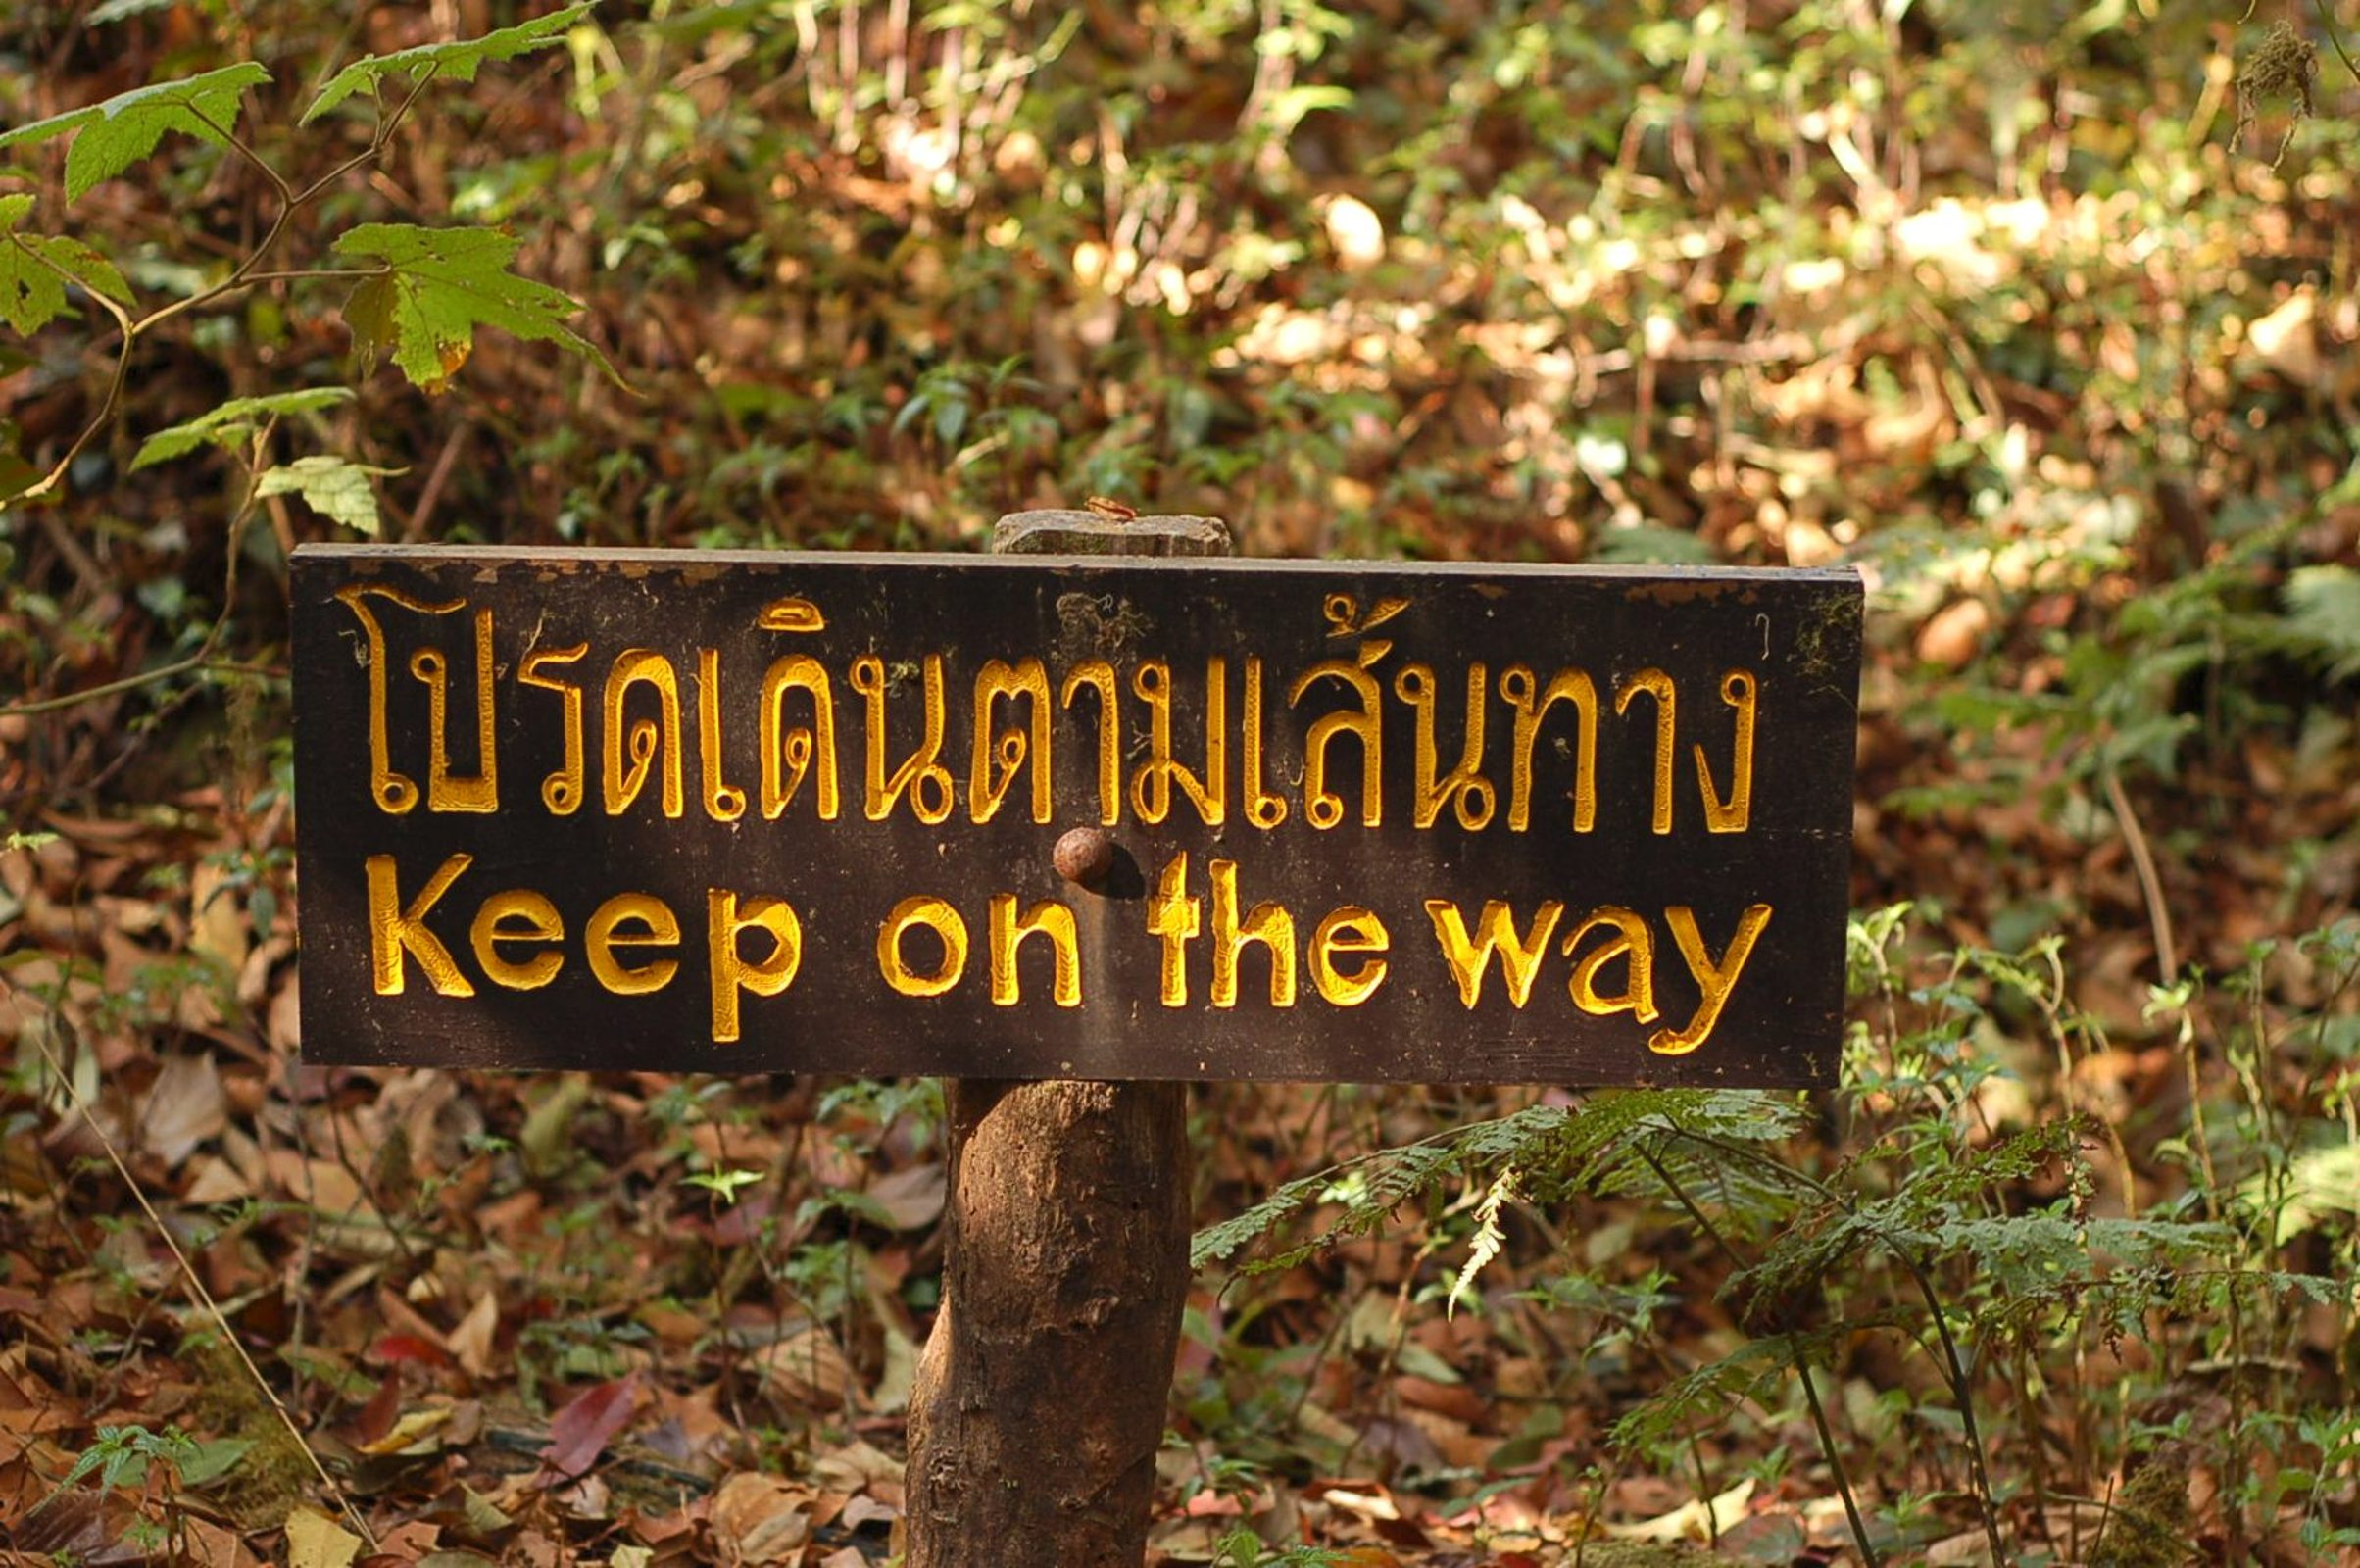 Taoism Admonition - Keep on the Way sign